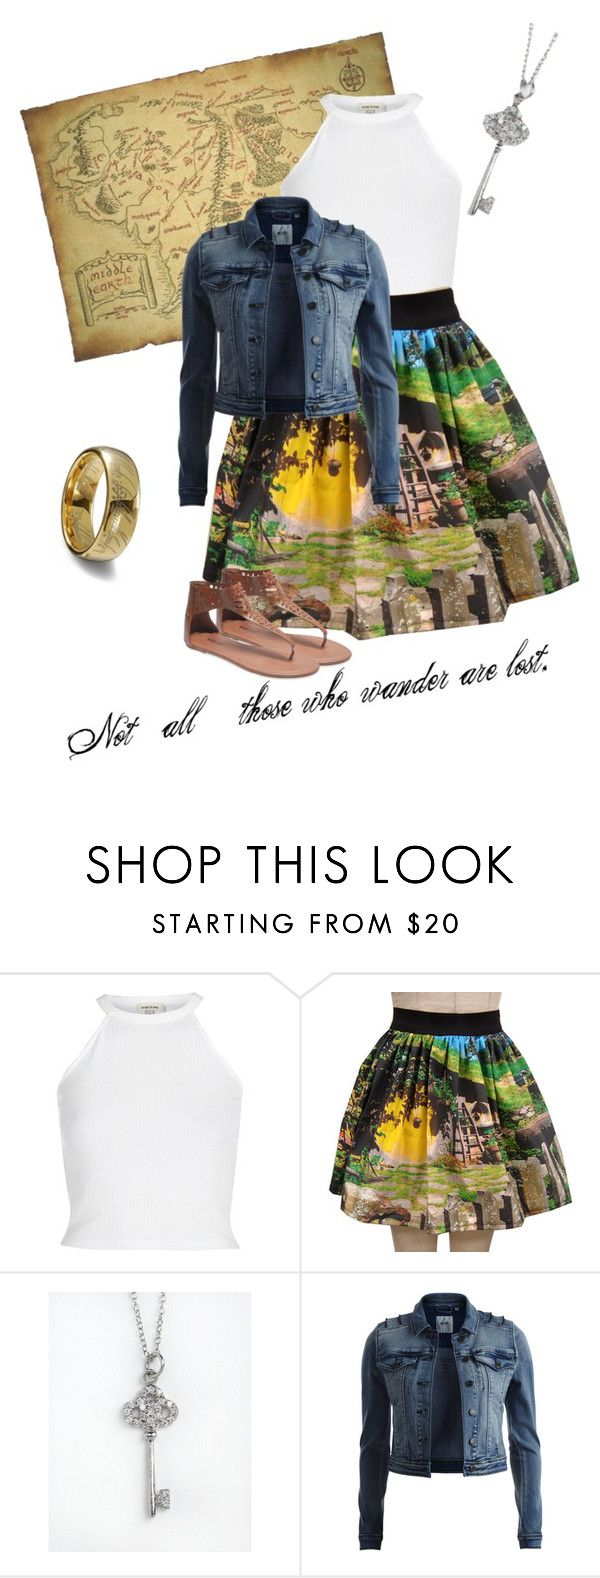 """Untitled #23"" by karlyallen ❤ liked on Polyvore featuring River Island, Lord & Taylor, Object Collectors Item, Wet Seal, lordoftherings and TheHobbit"